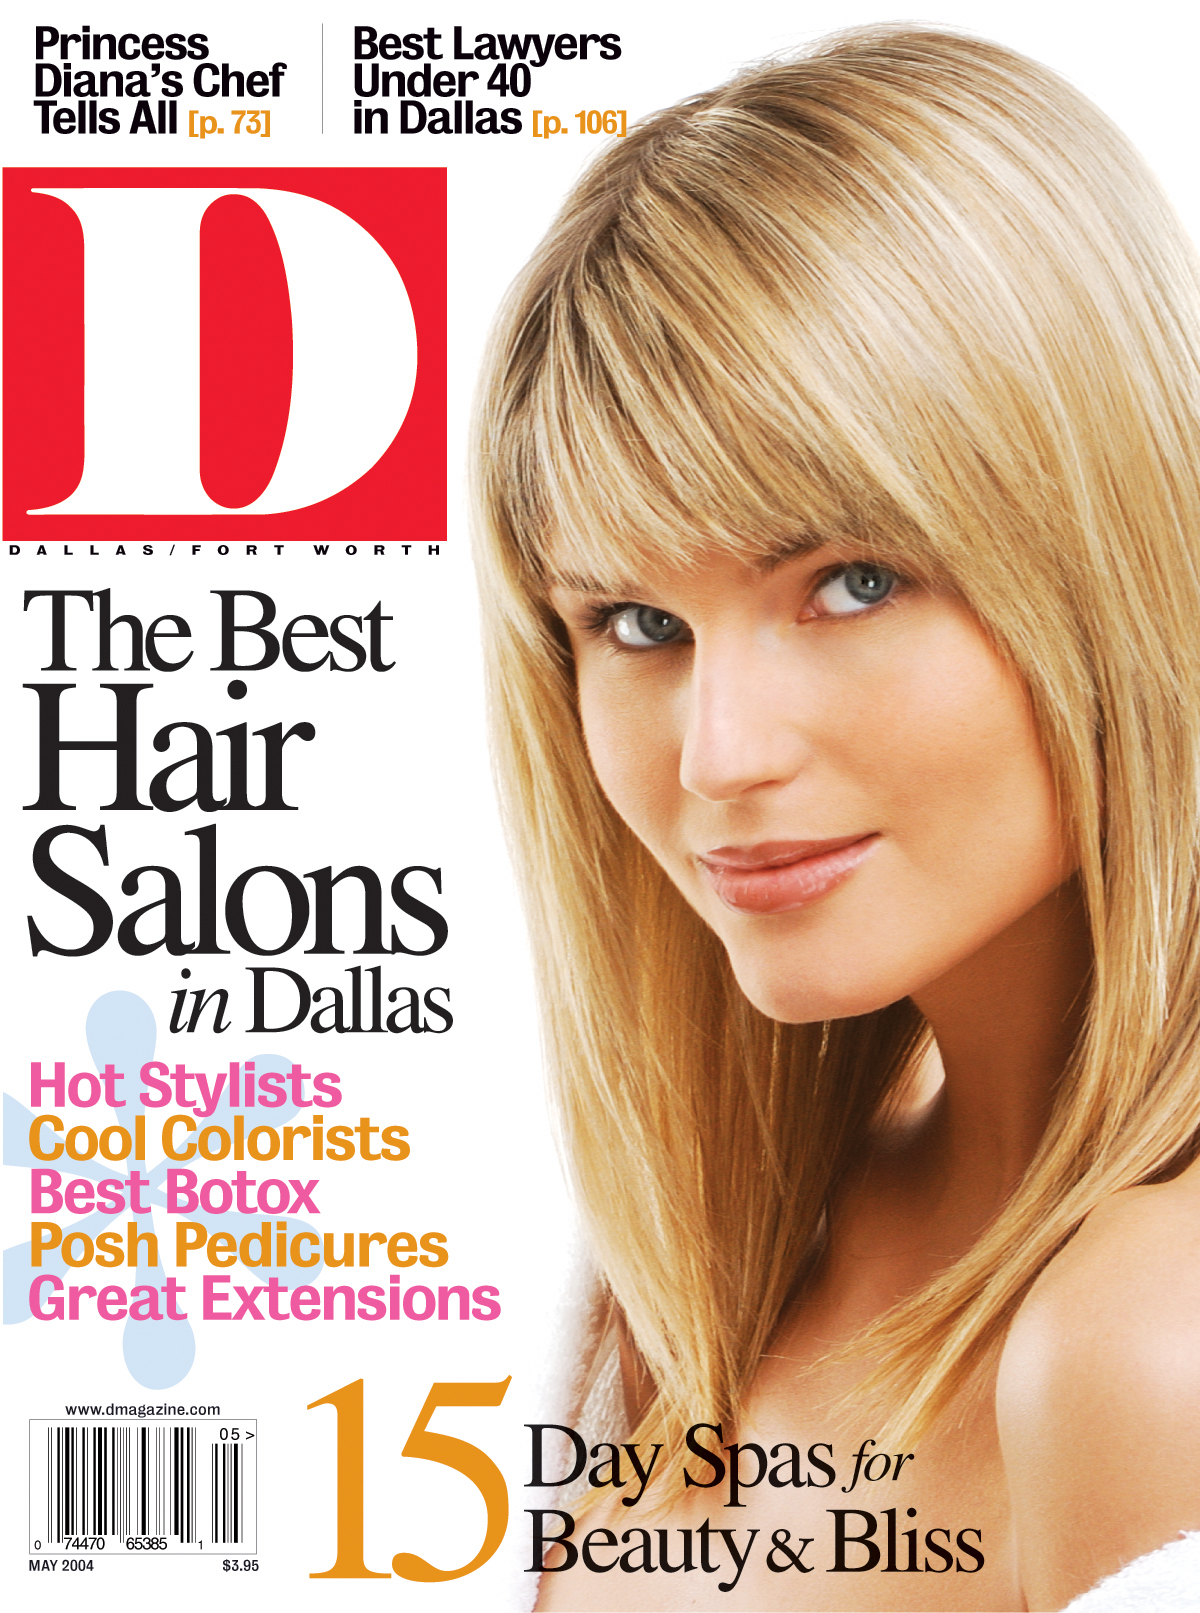 May 2004 cover